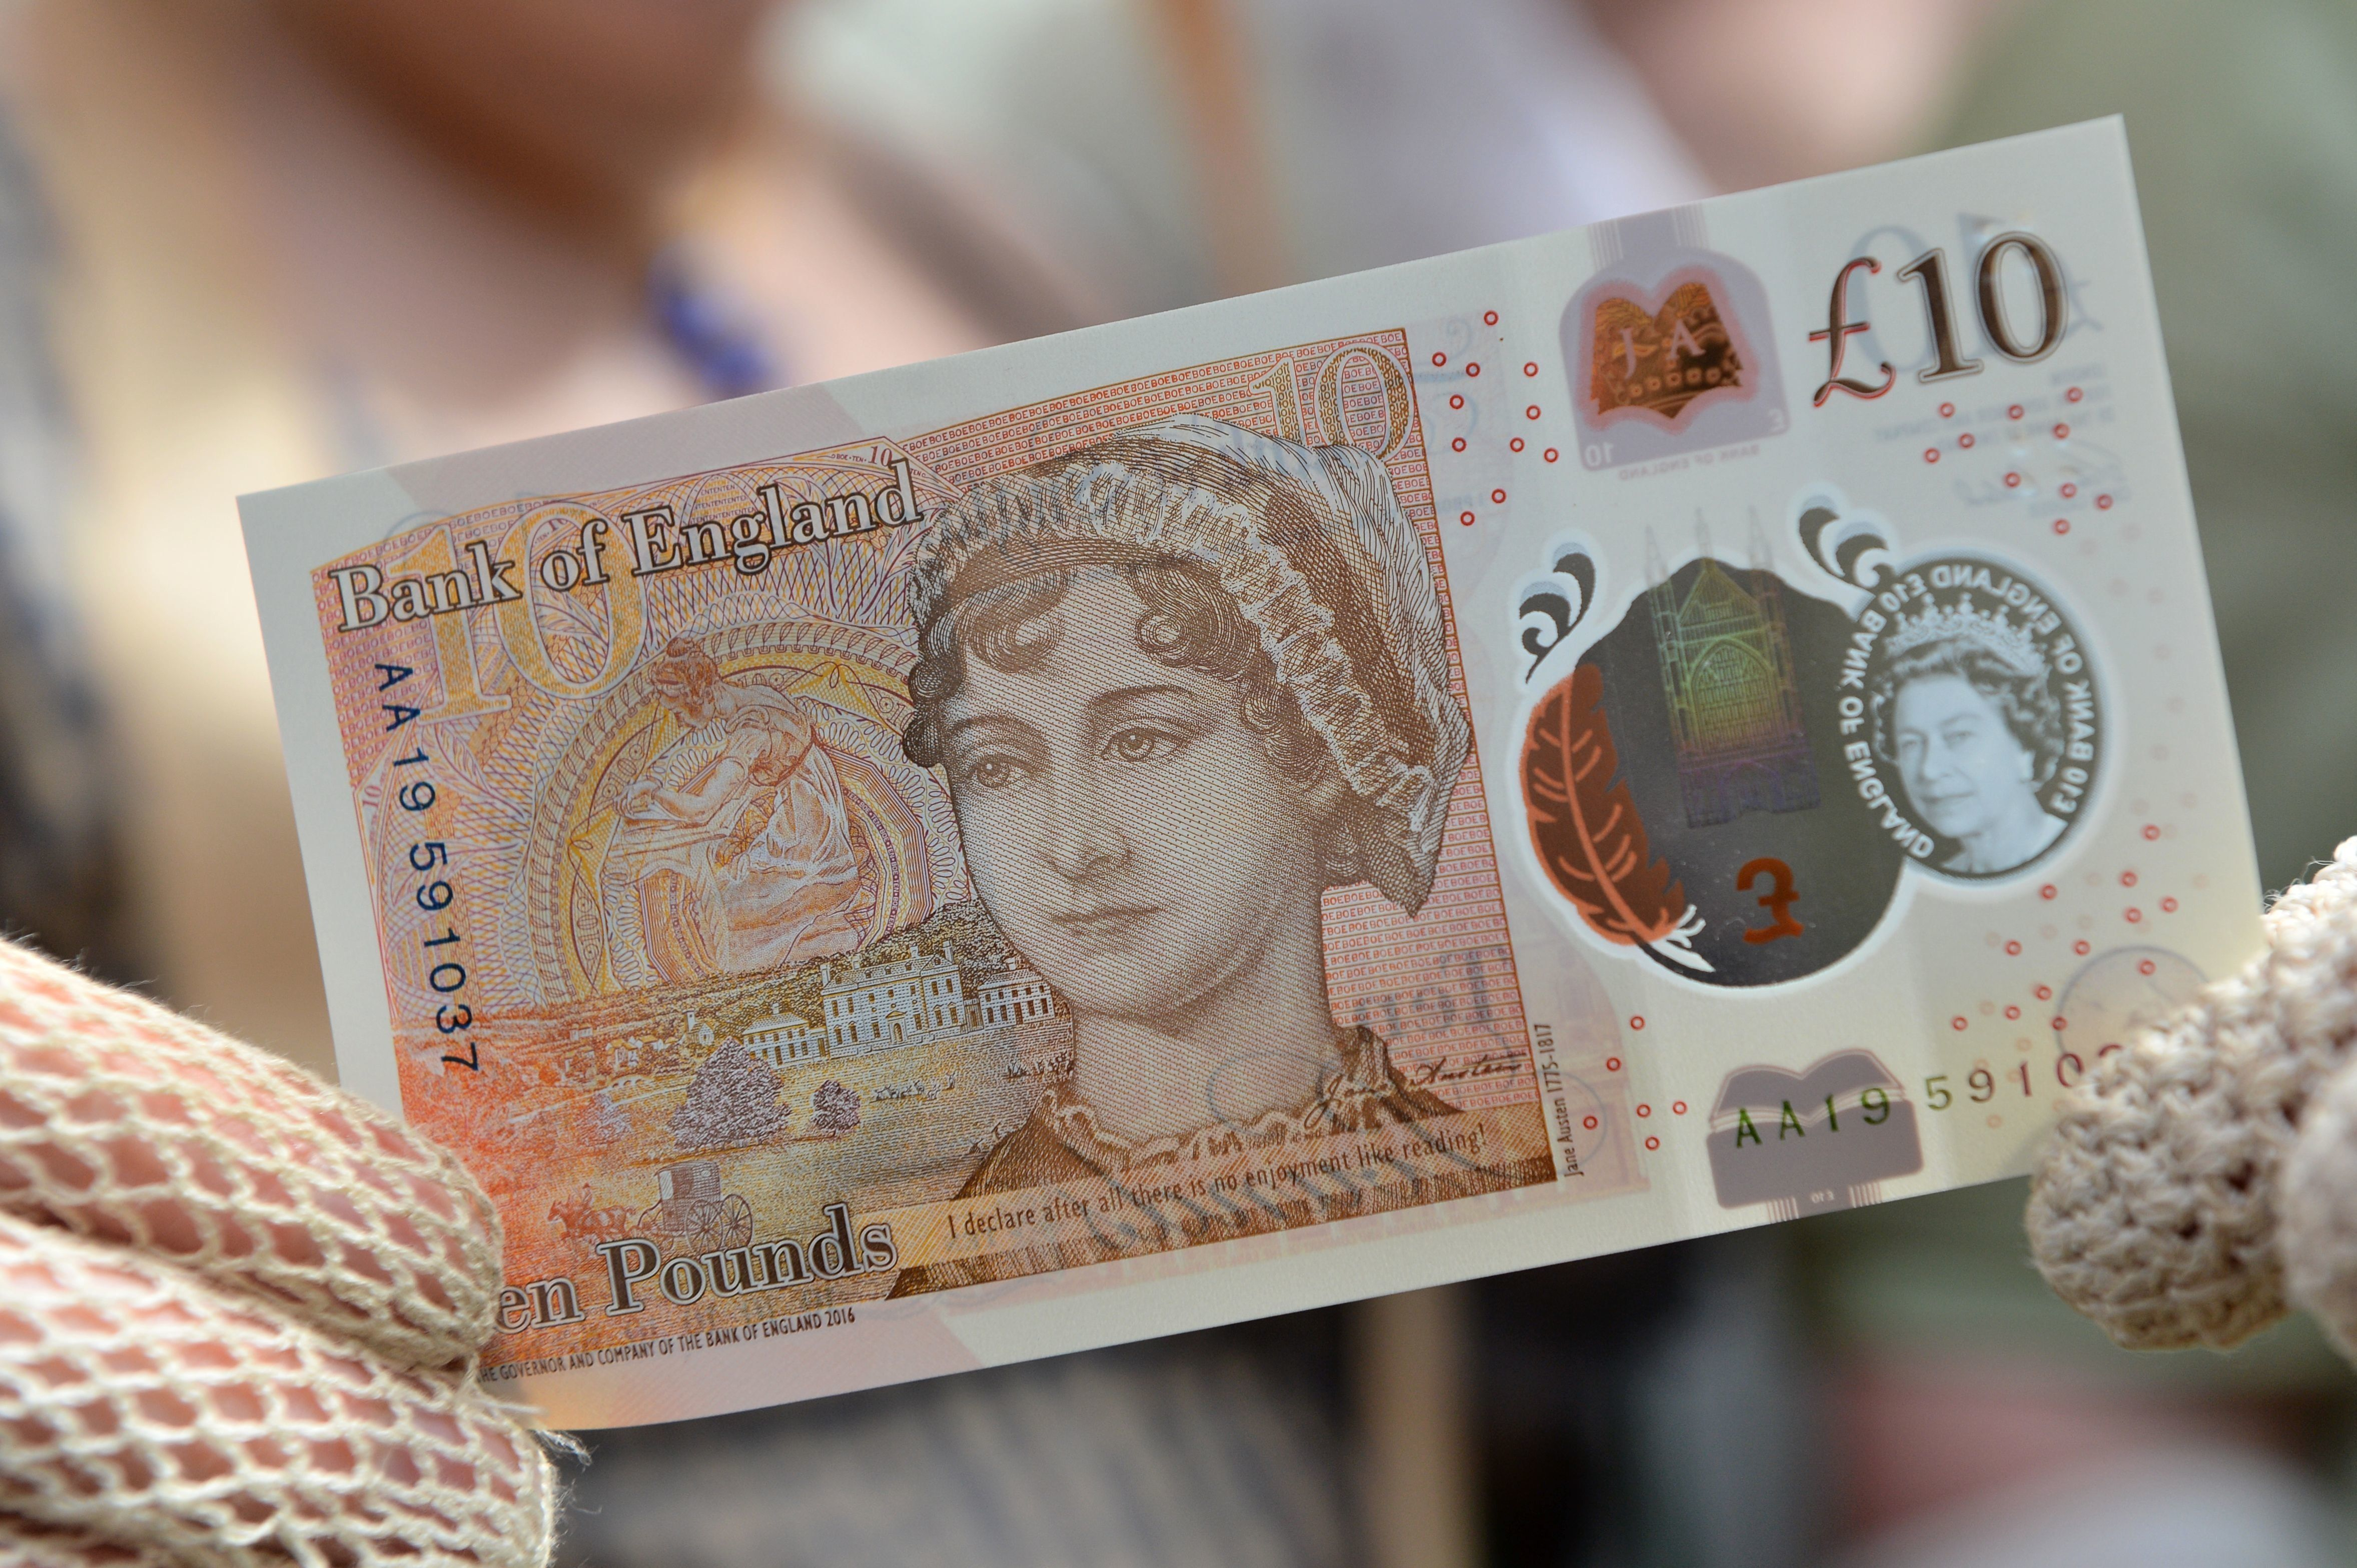 People in period costume pose with on the Bank of England's new ten pound notes, featuring author Jane Austen, during its launch at Winchester Cathedral in Winchester, southern England, on July 18, 2017. Two hundred years after Jane Austen's death, Britain is celebrating one of its best-loved authors, who combined romance with biting social commentary that still speaks to fans around the world. Austen is buried in the cathedral in Winchester, where she died. / AFP PHOTO / POOL / Chris J Ratcliffe        (Photo credit should read CHRIS J RATCLIFFE/AFP/Getty Images)